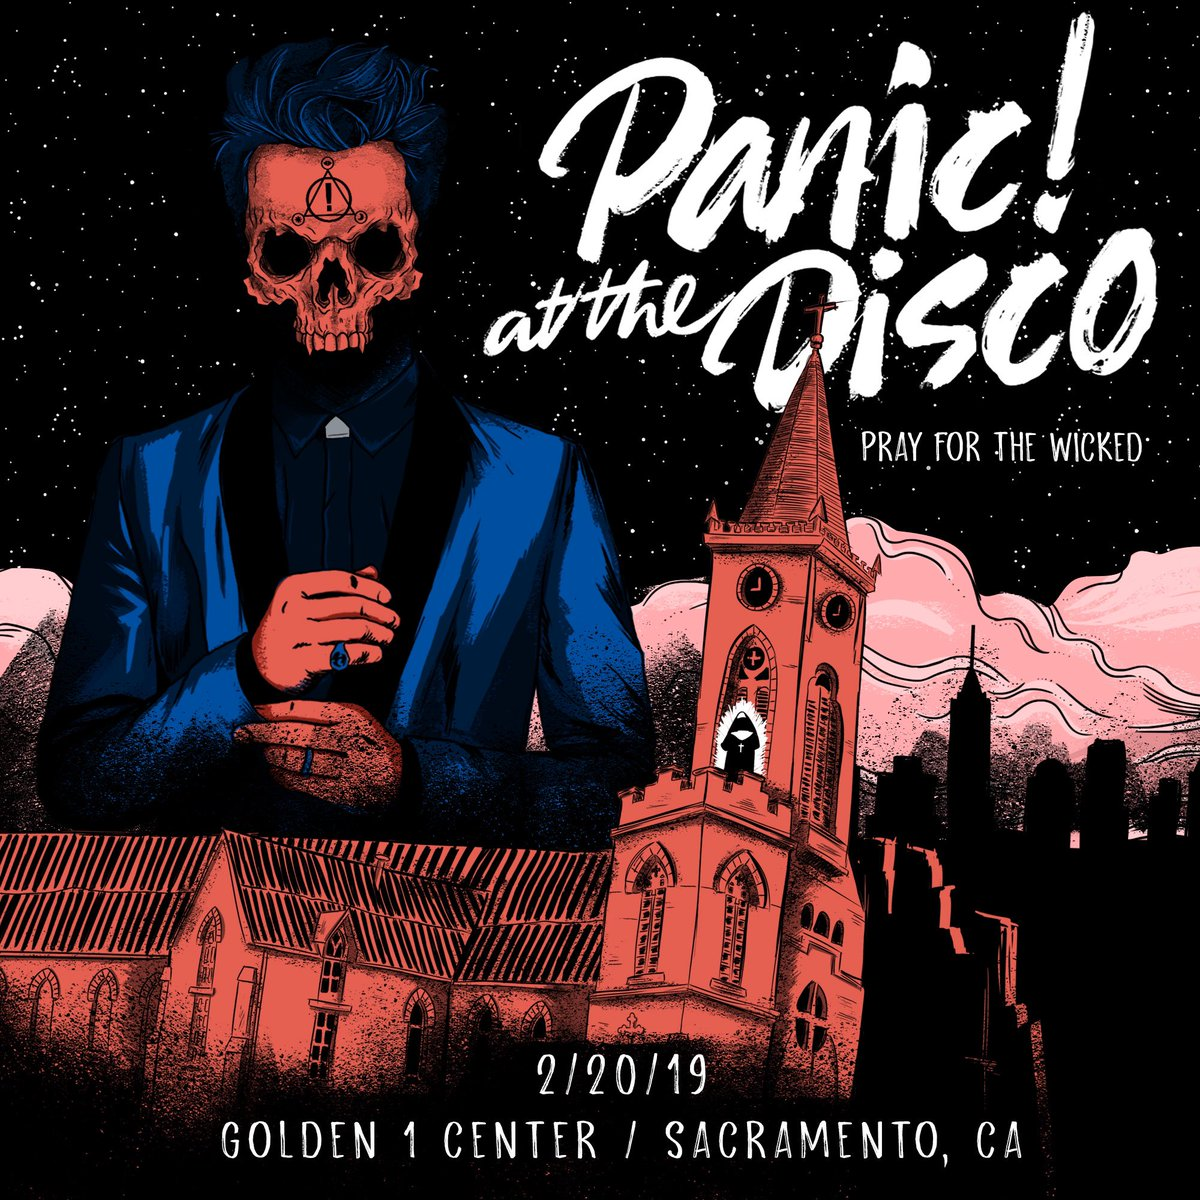 RT @Golden1Center: 🎵 Well this calls for a toast 🎵  See you TONIGHT for @PanicAtTheDisco! #PrayForTheWicked https://t.co/HJmcZzoUf0